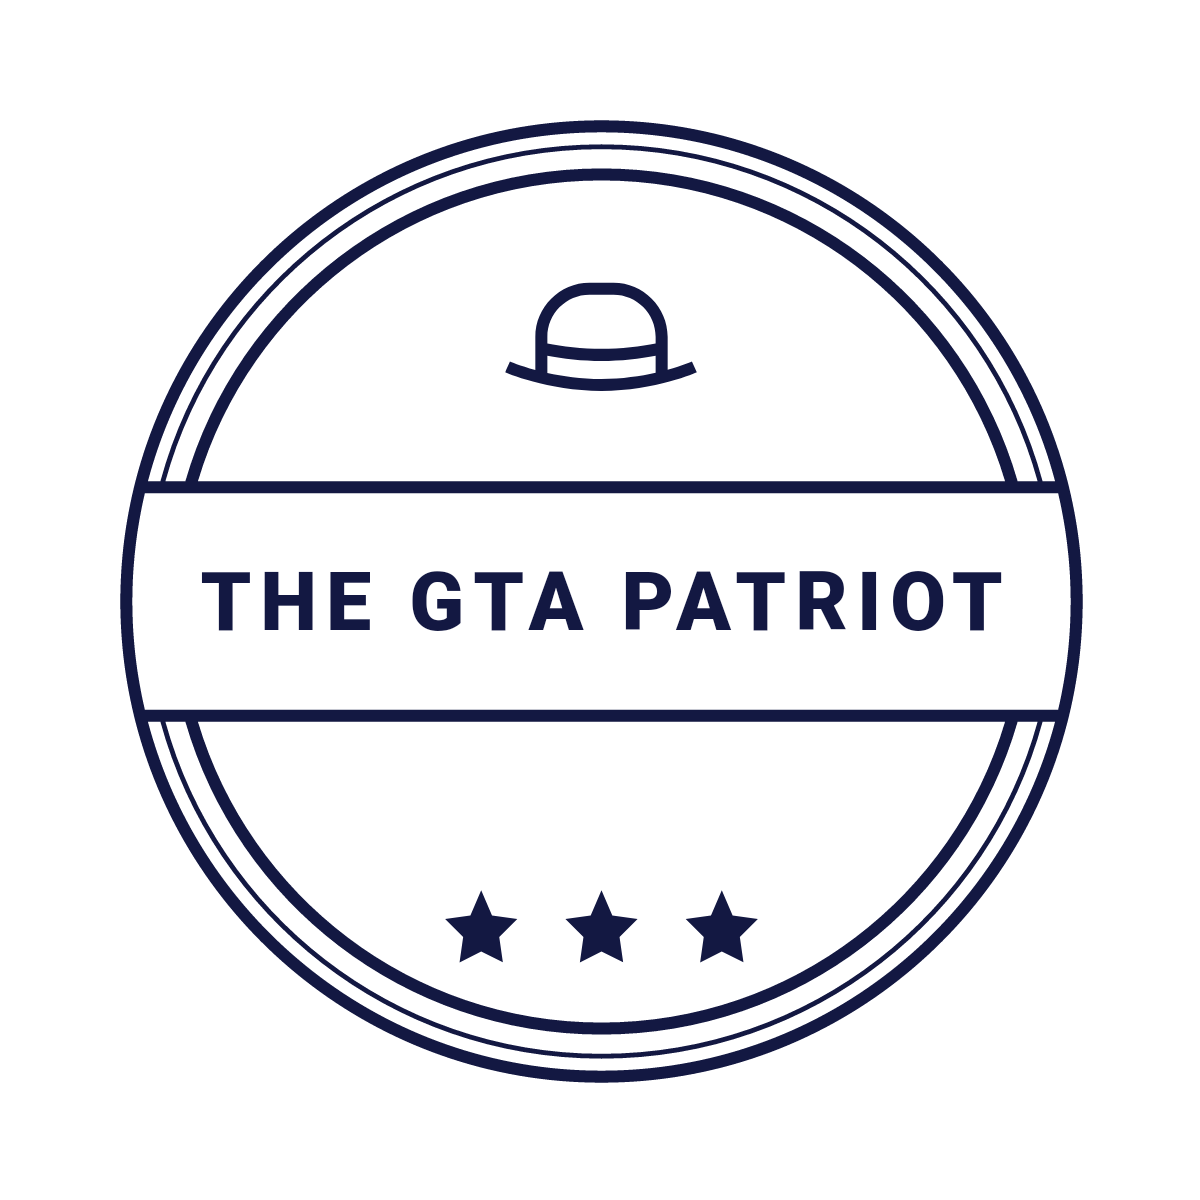 The GTA Patriot